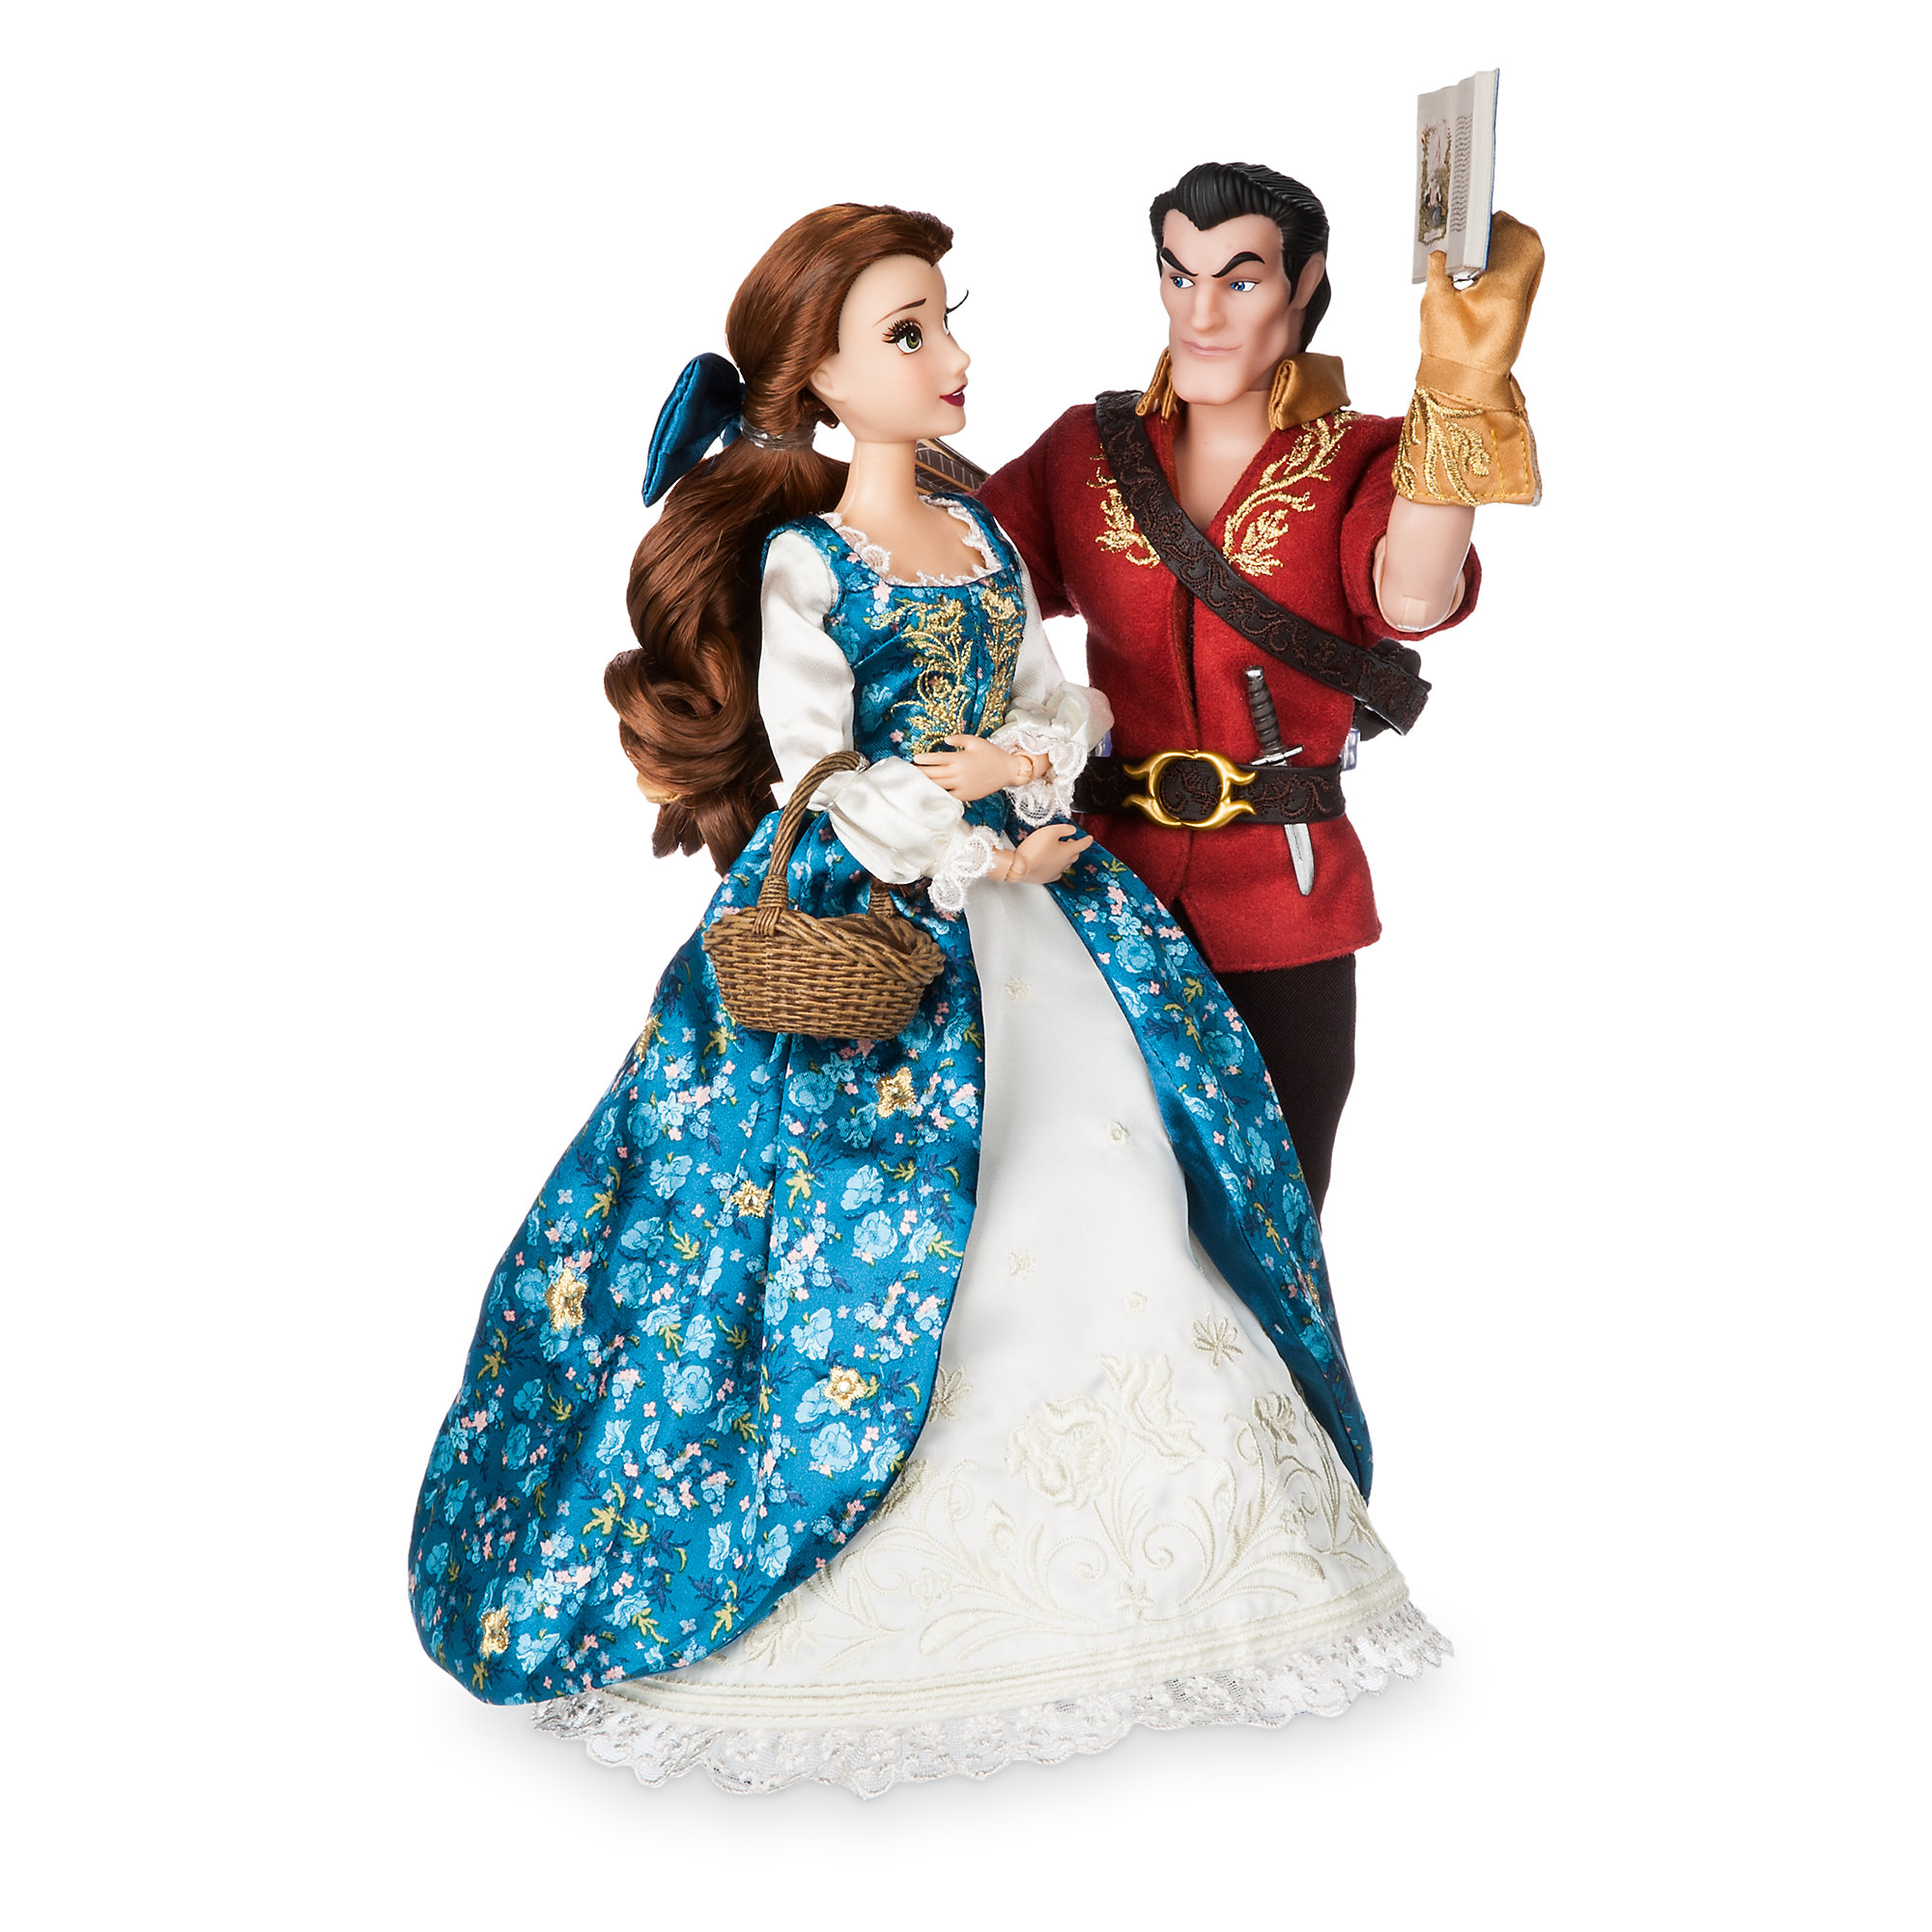 Disney Fairytale Designer Collection Doll Set - Belle and Gaston